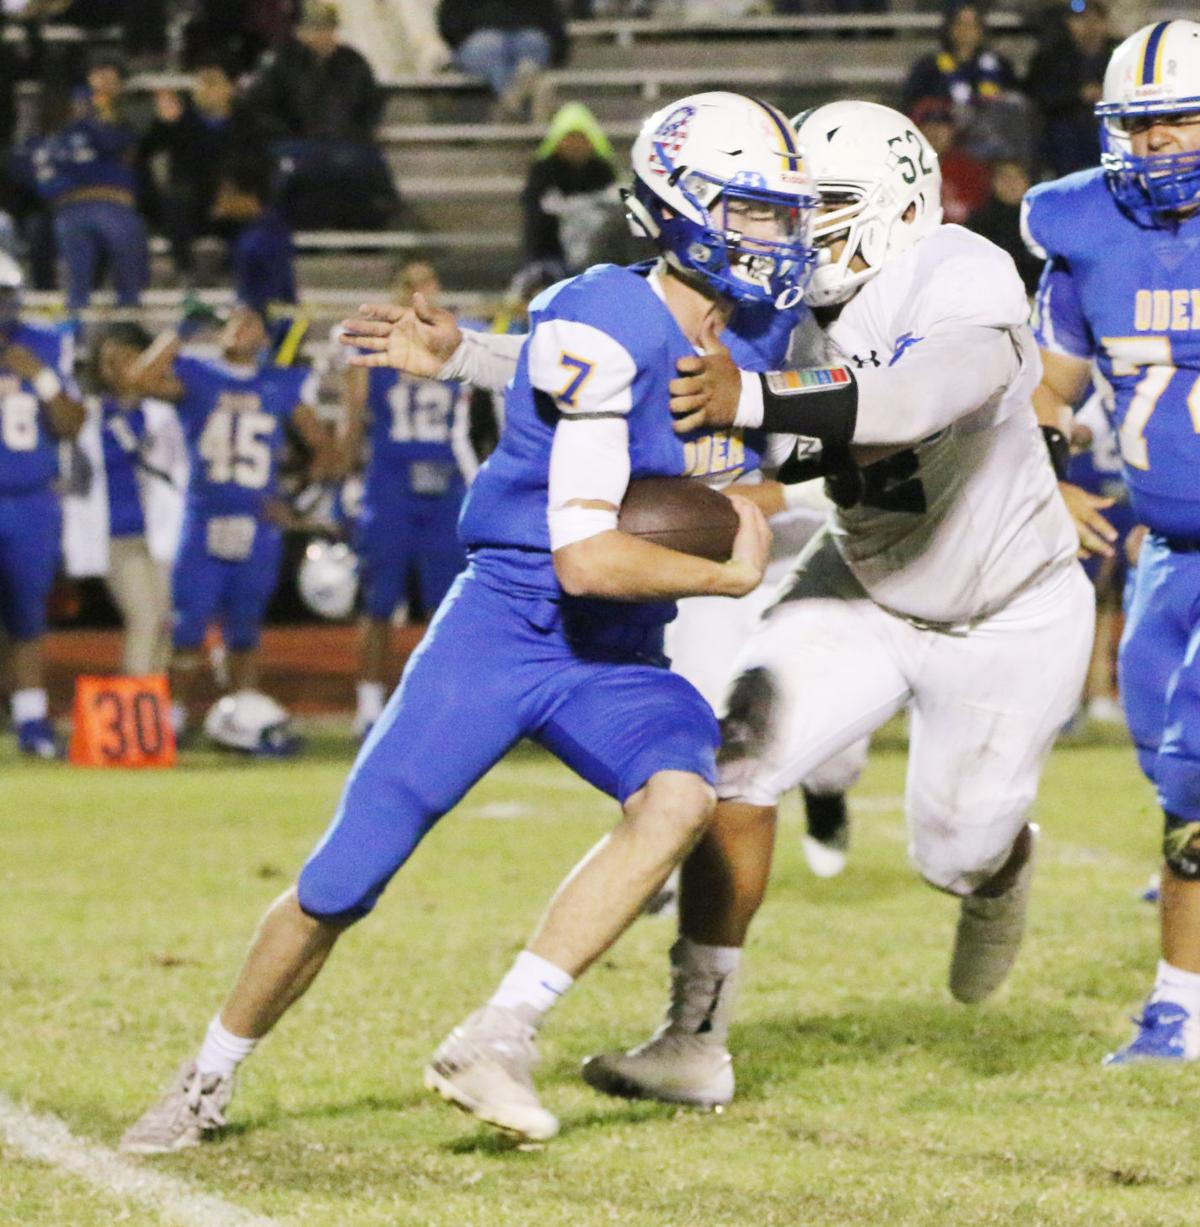 Owls rally past Greyhounds, 28-16 win leads to district championship battle